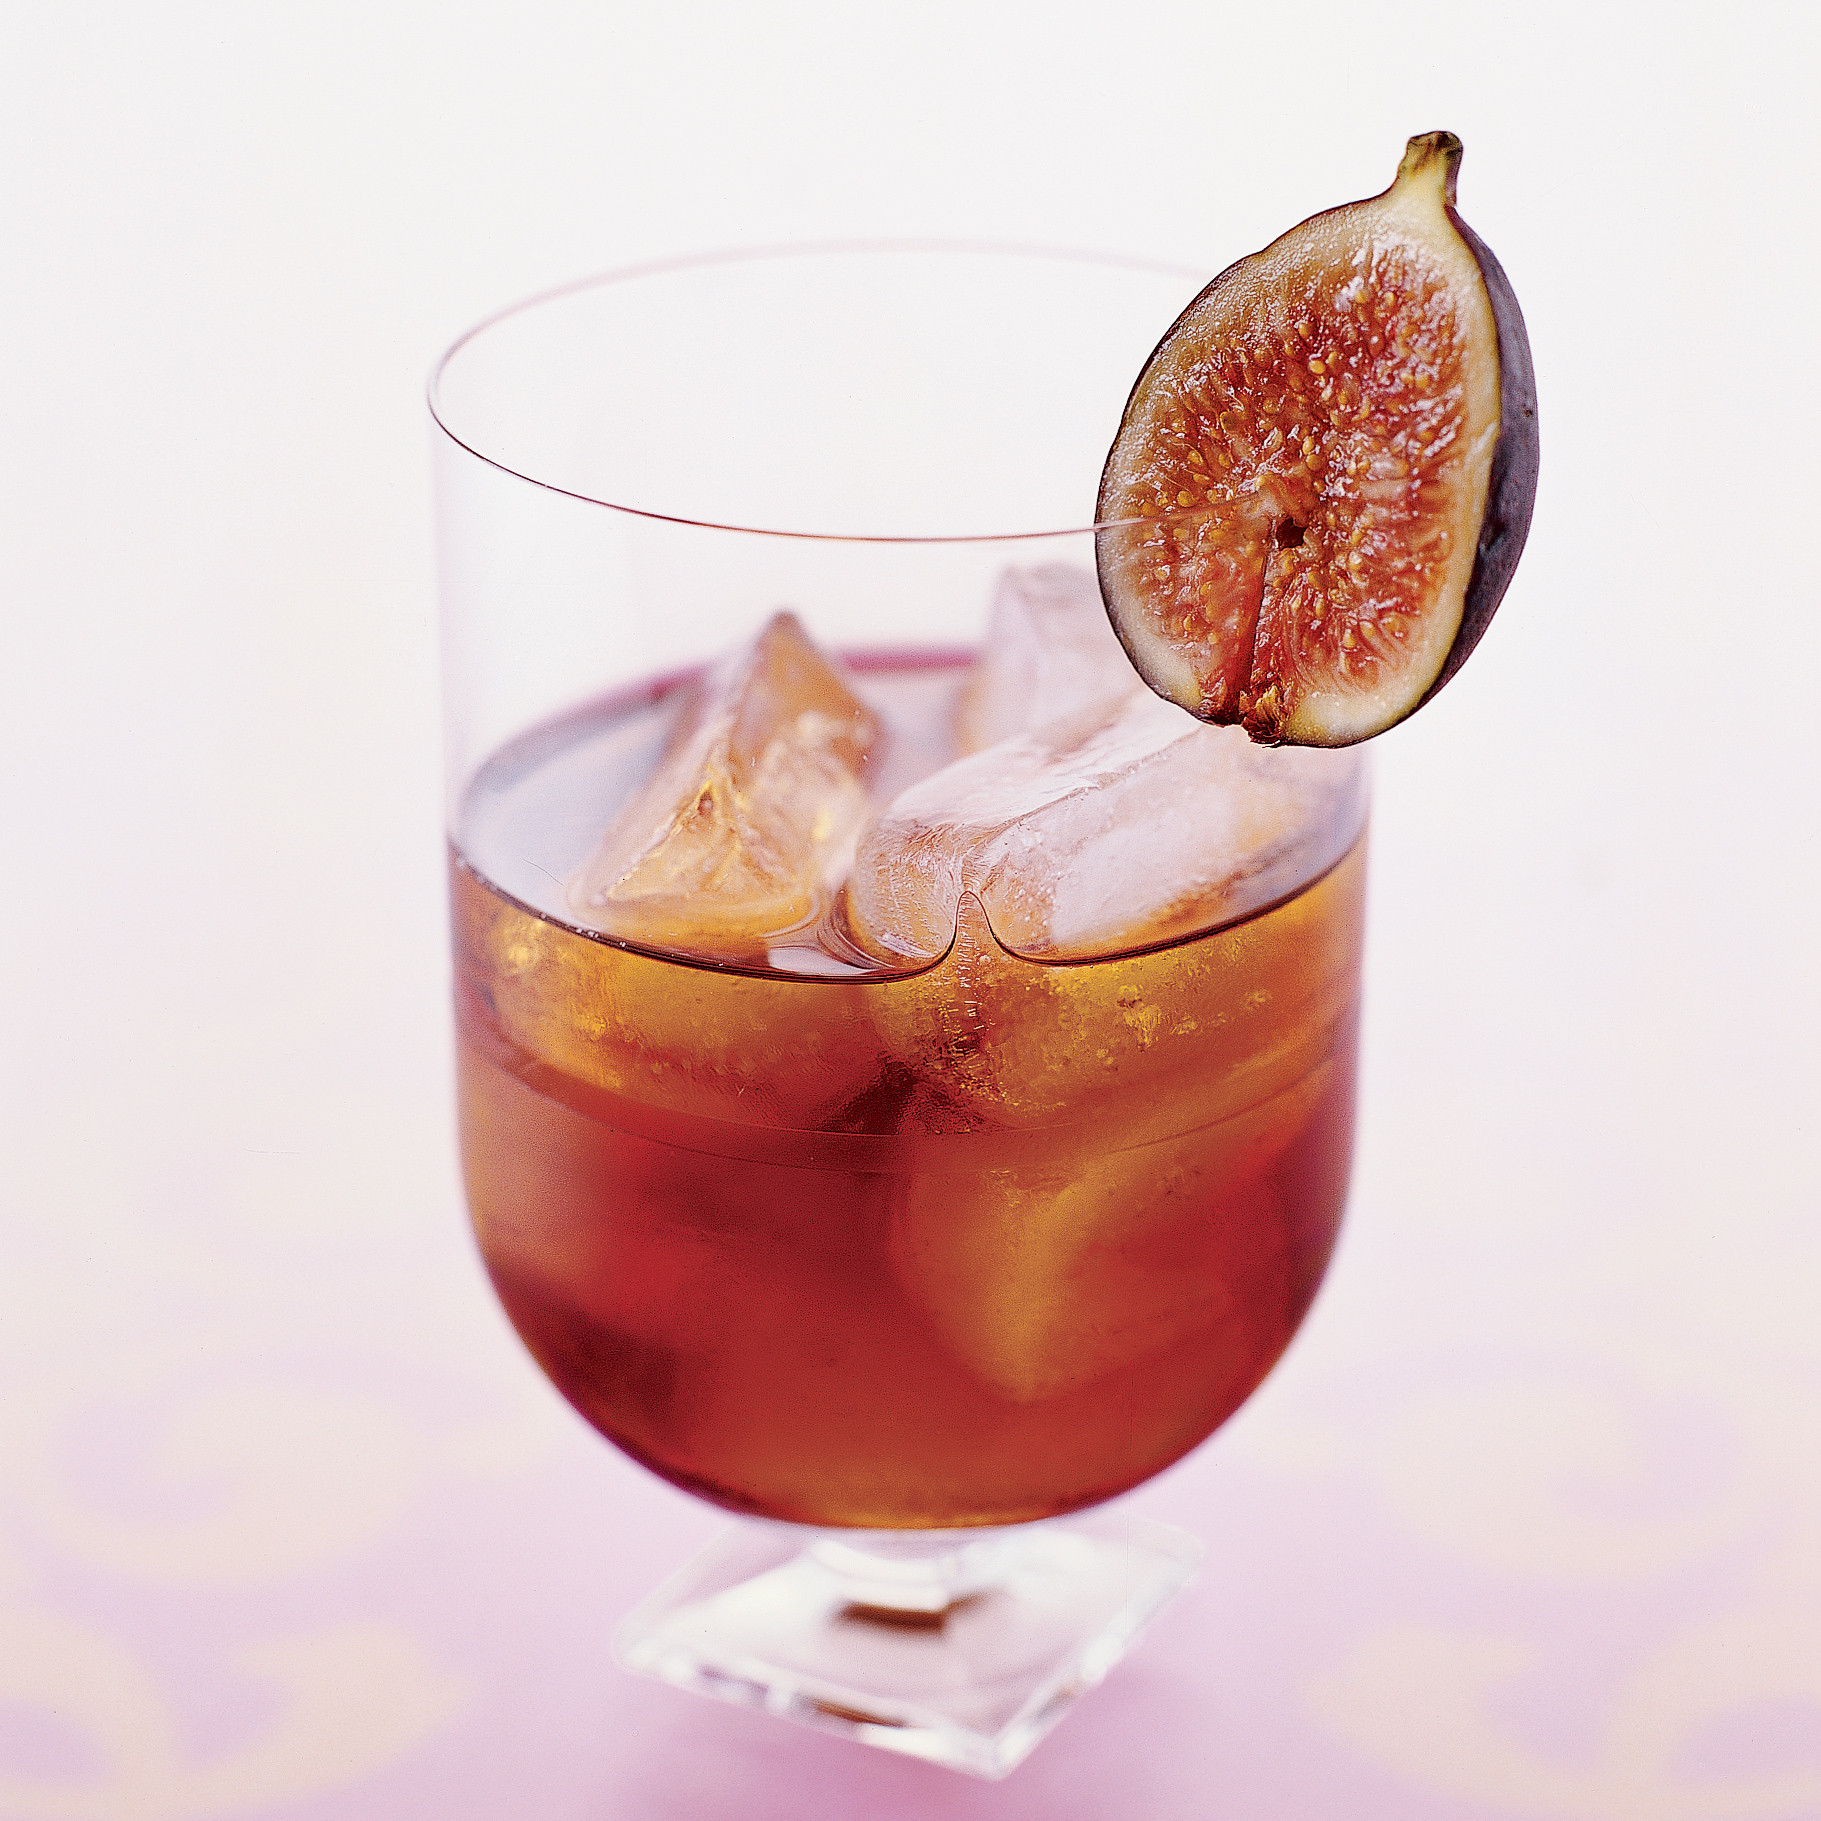 Fennel & Fig Infused Vodka